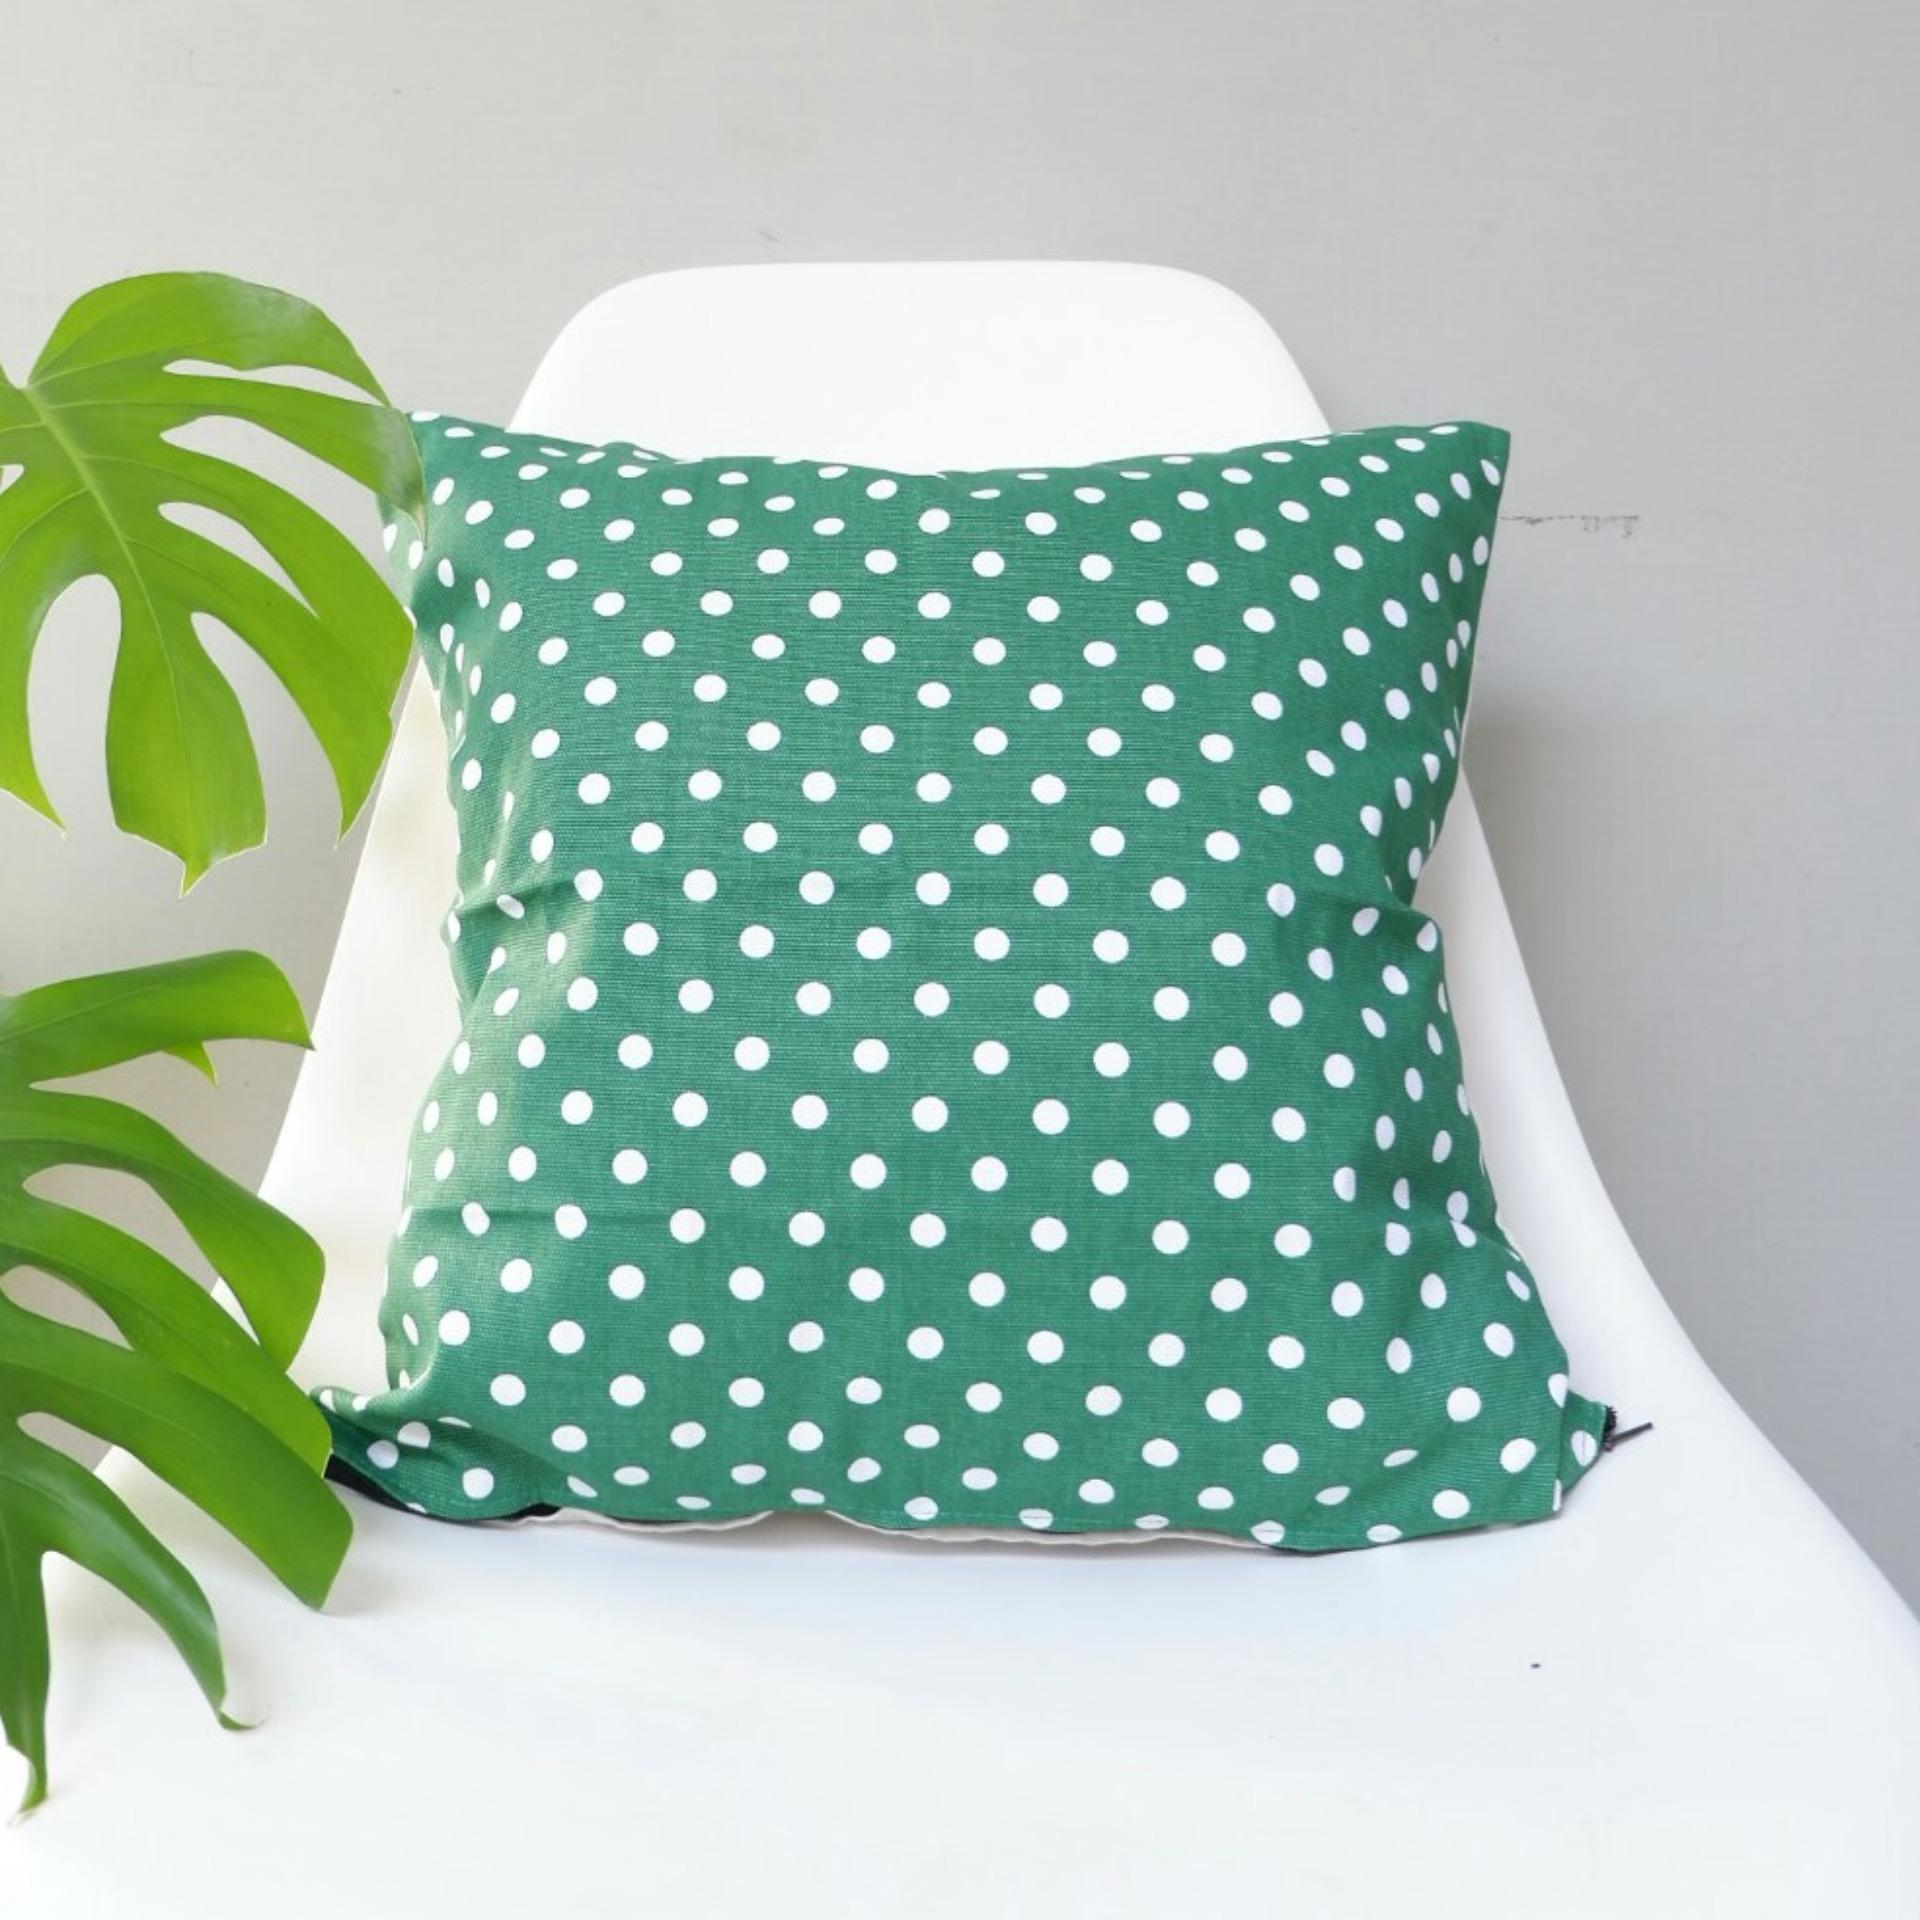 Cushion Cover / Sarung Bantal Sofa - Polkadot Hijau